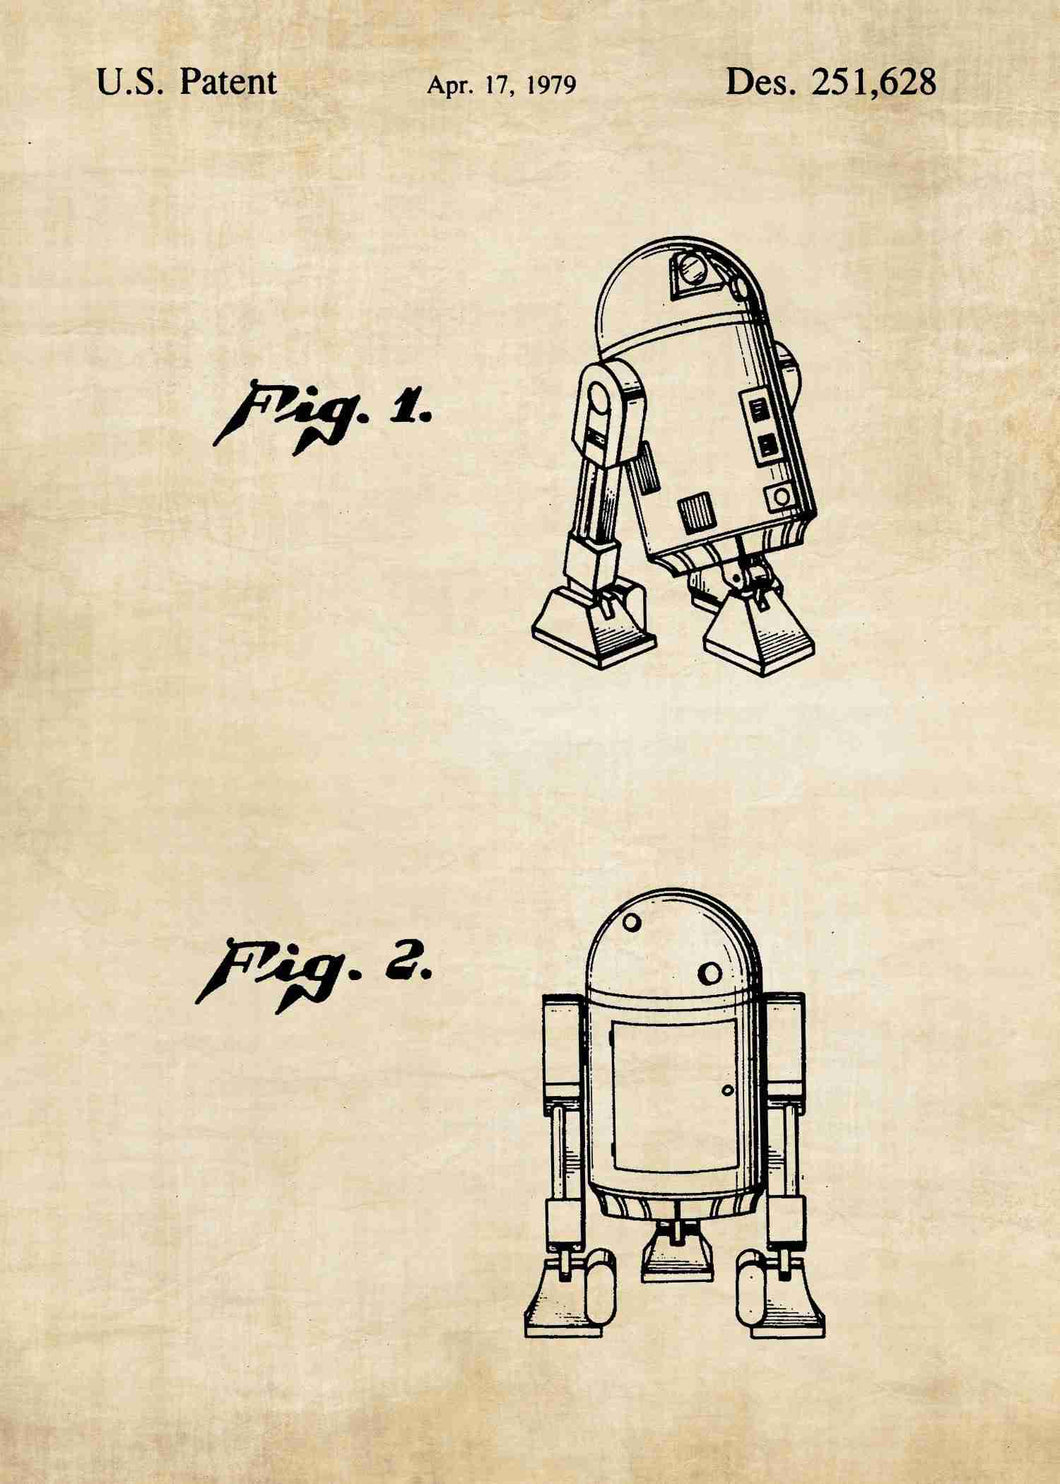 Original R2-D2 patent from the first trilogy of the star wars series. This star wars poster is in the style vintage